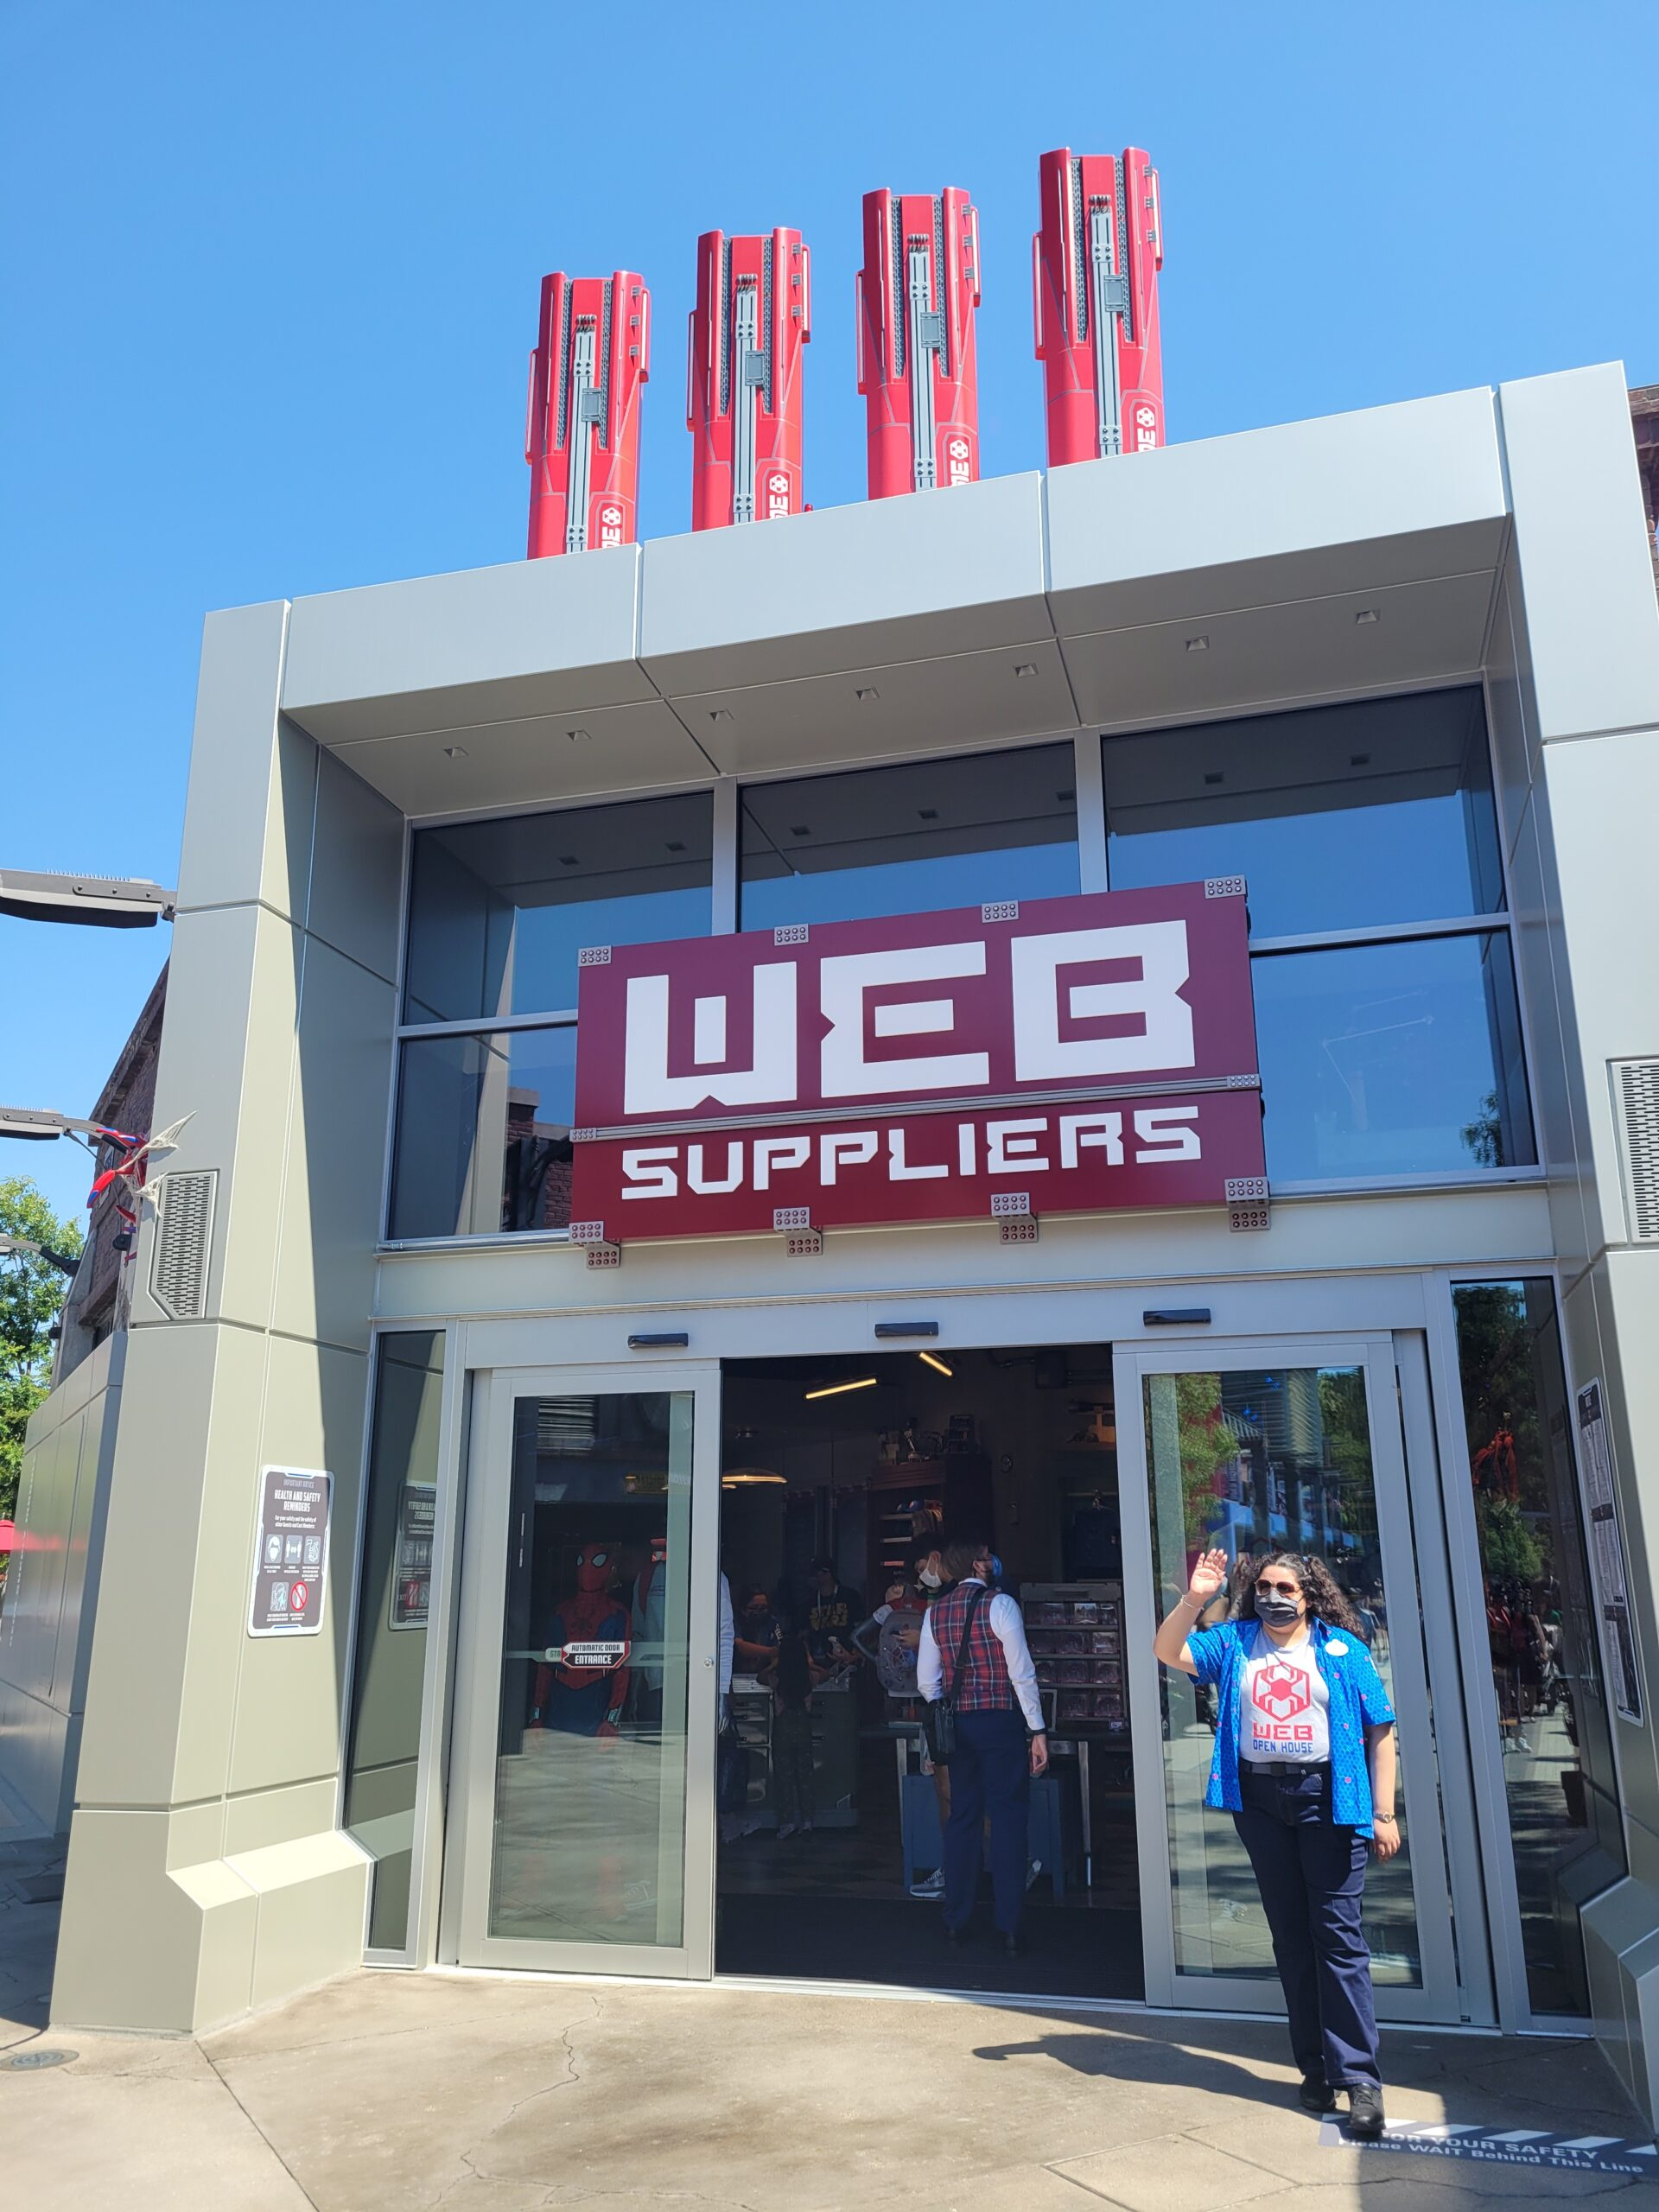 The entrance to WEB Suppliers, one of the shopping feature at Avengers Campus Disneyland.